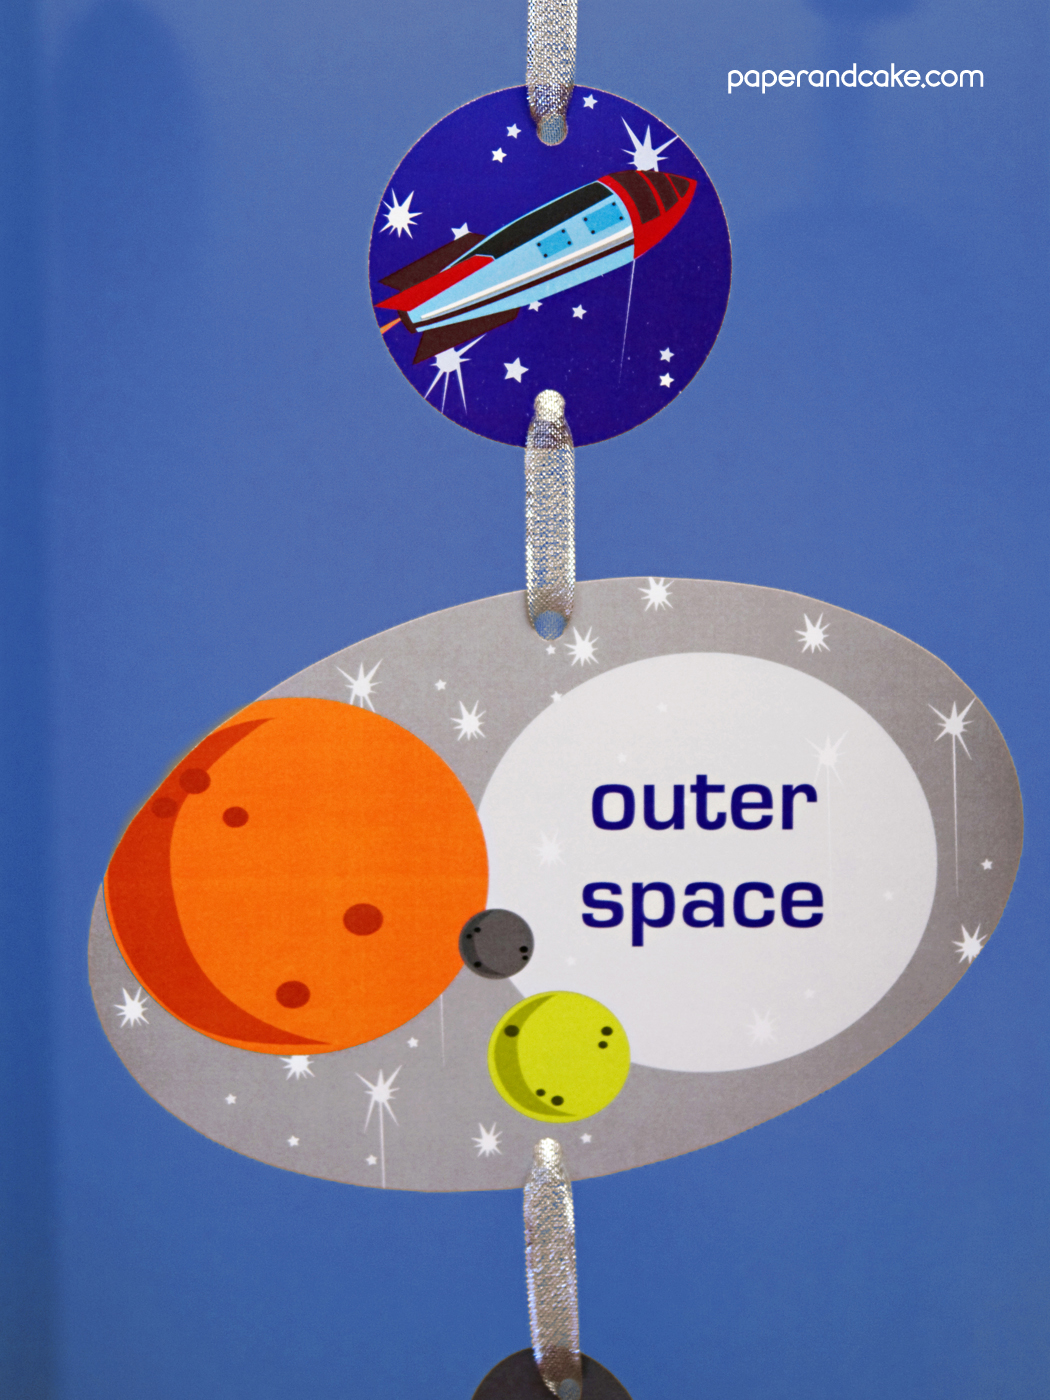 Space Printable Birthday Party  Paper and Cake Paper and Cake